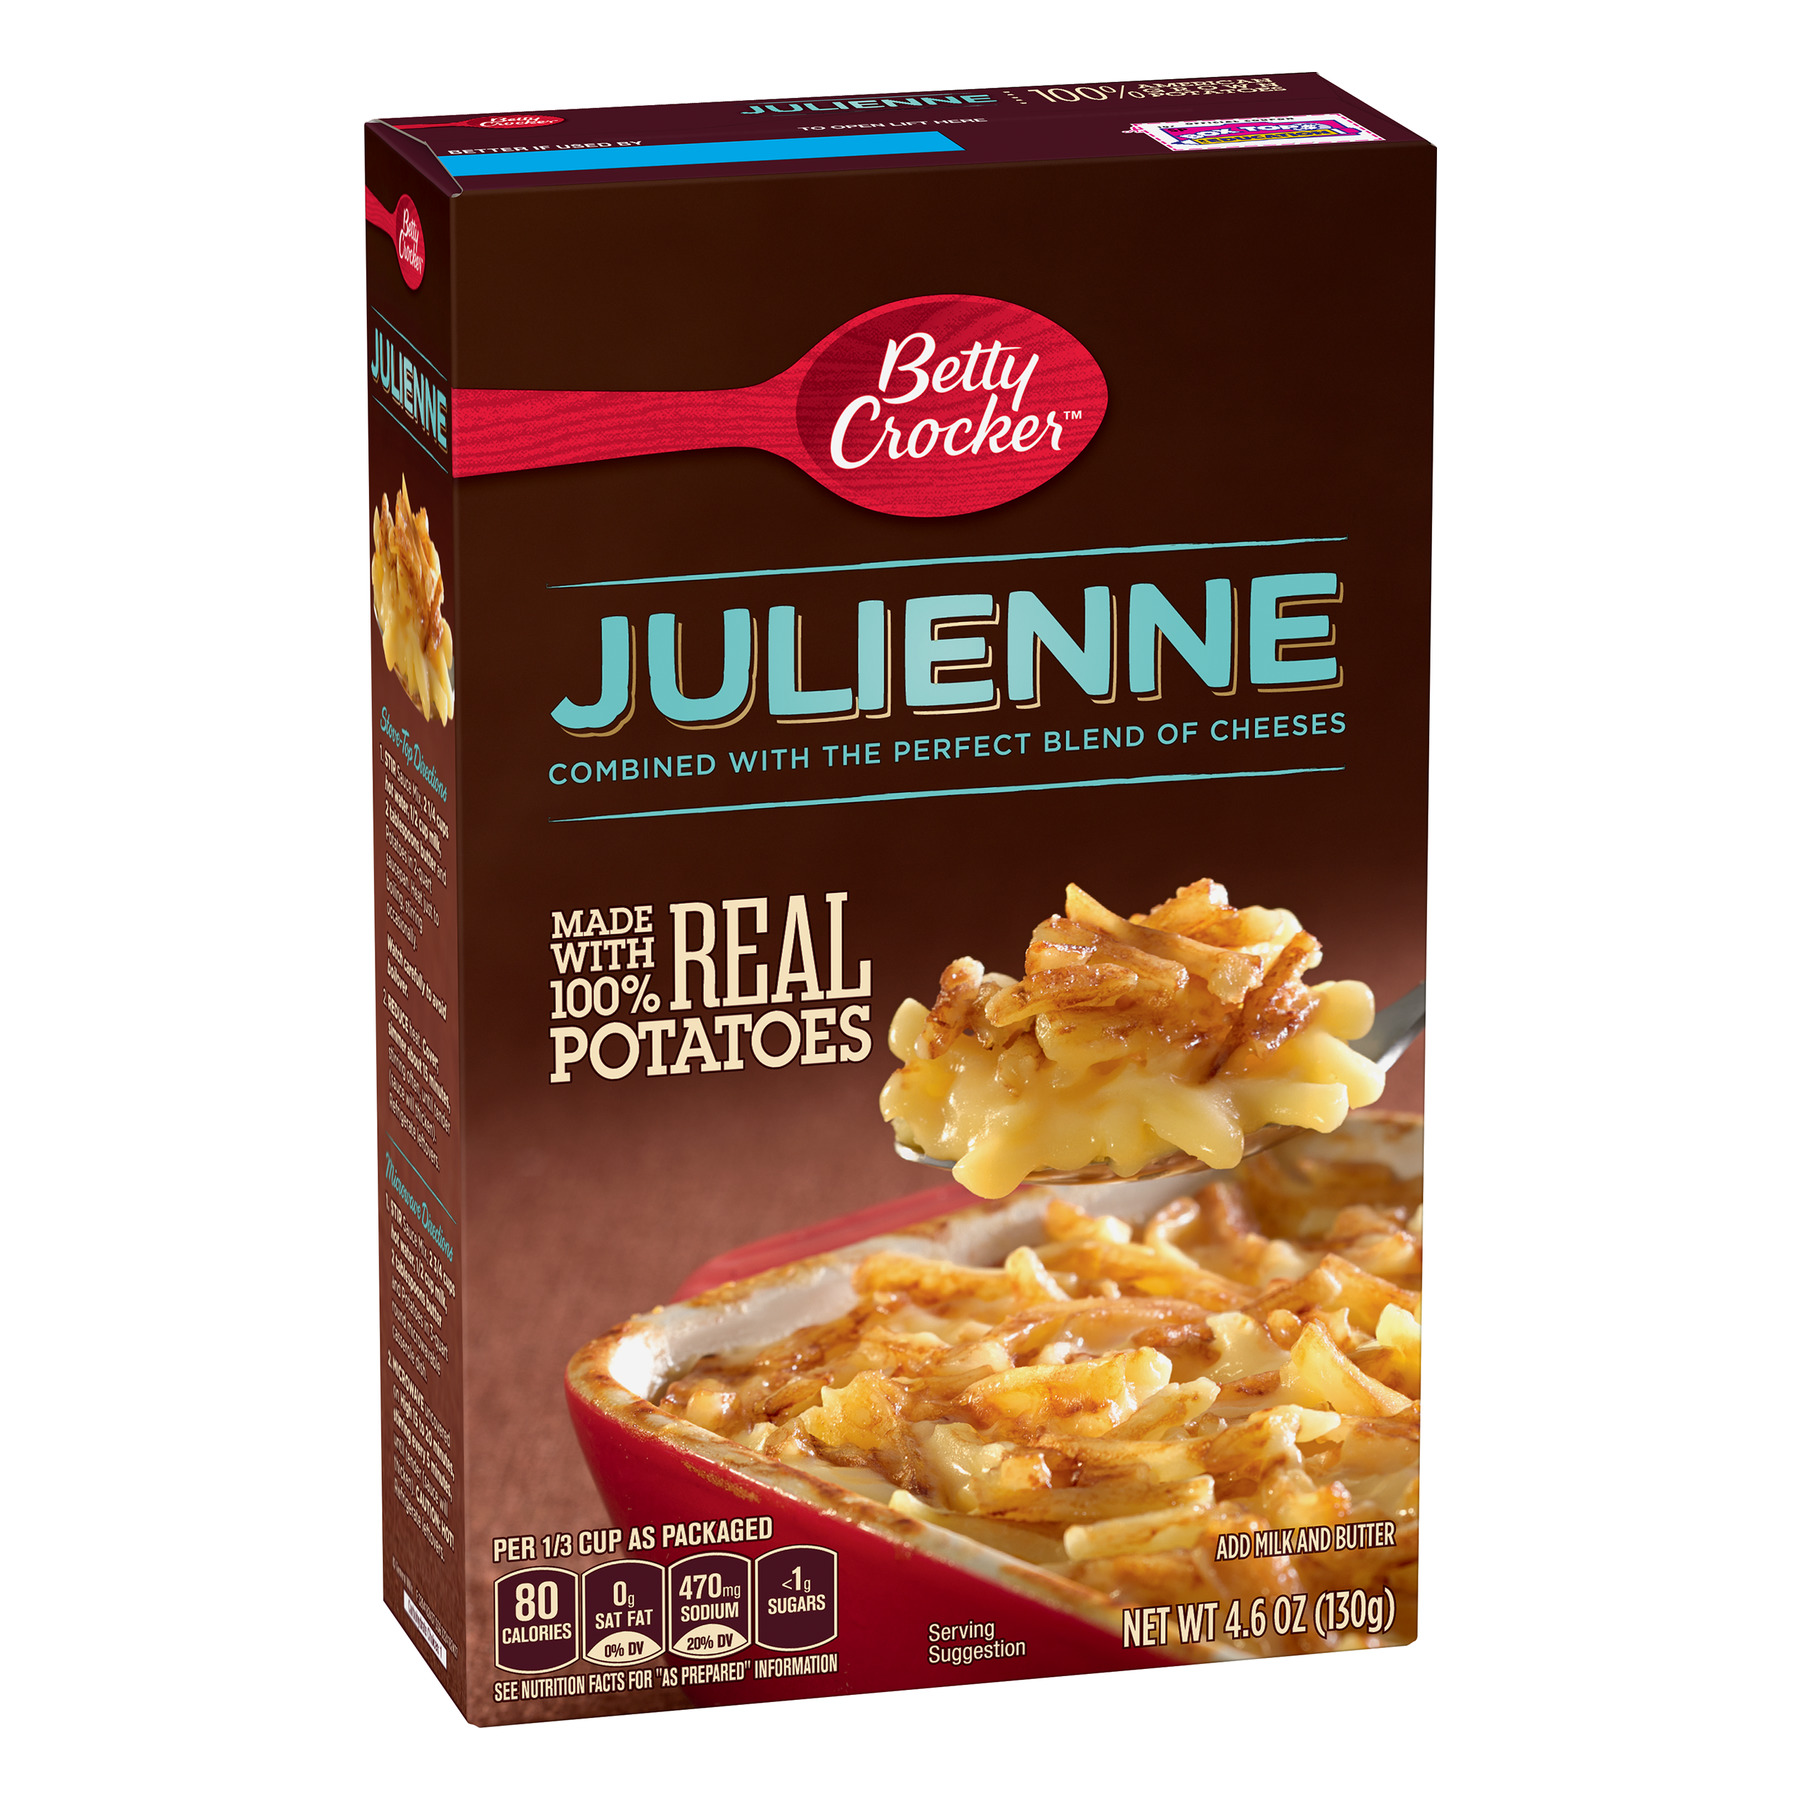 Betty Crocker Julienne Potatoes, 4.6 oz Box